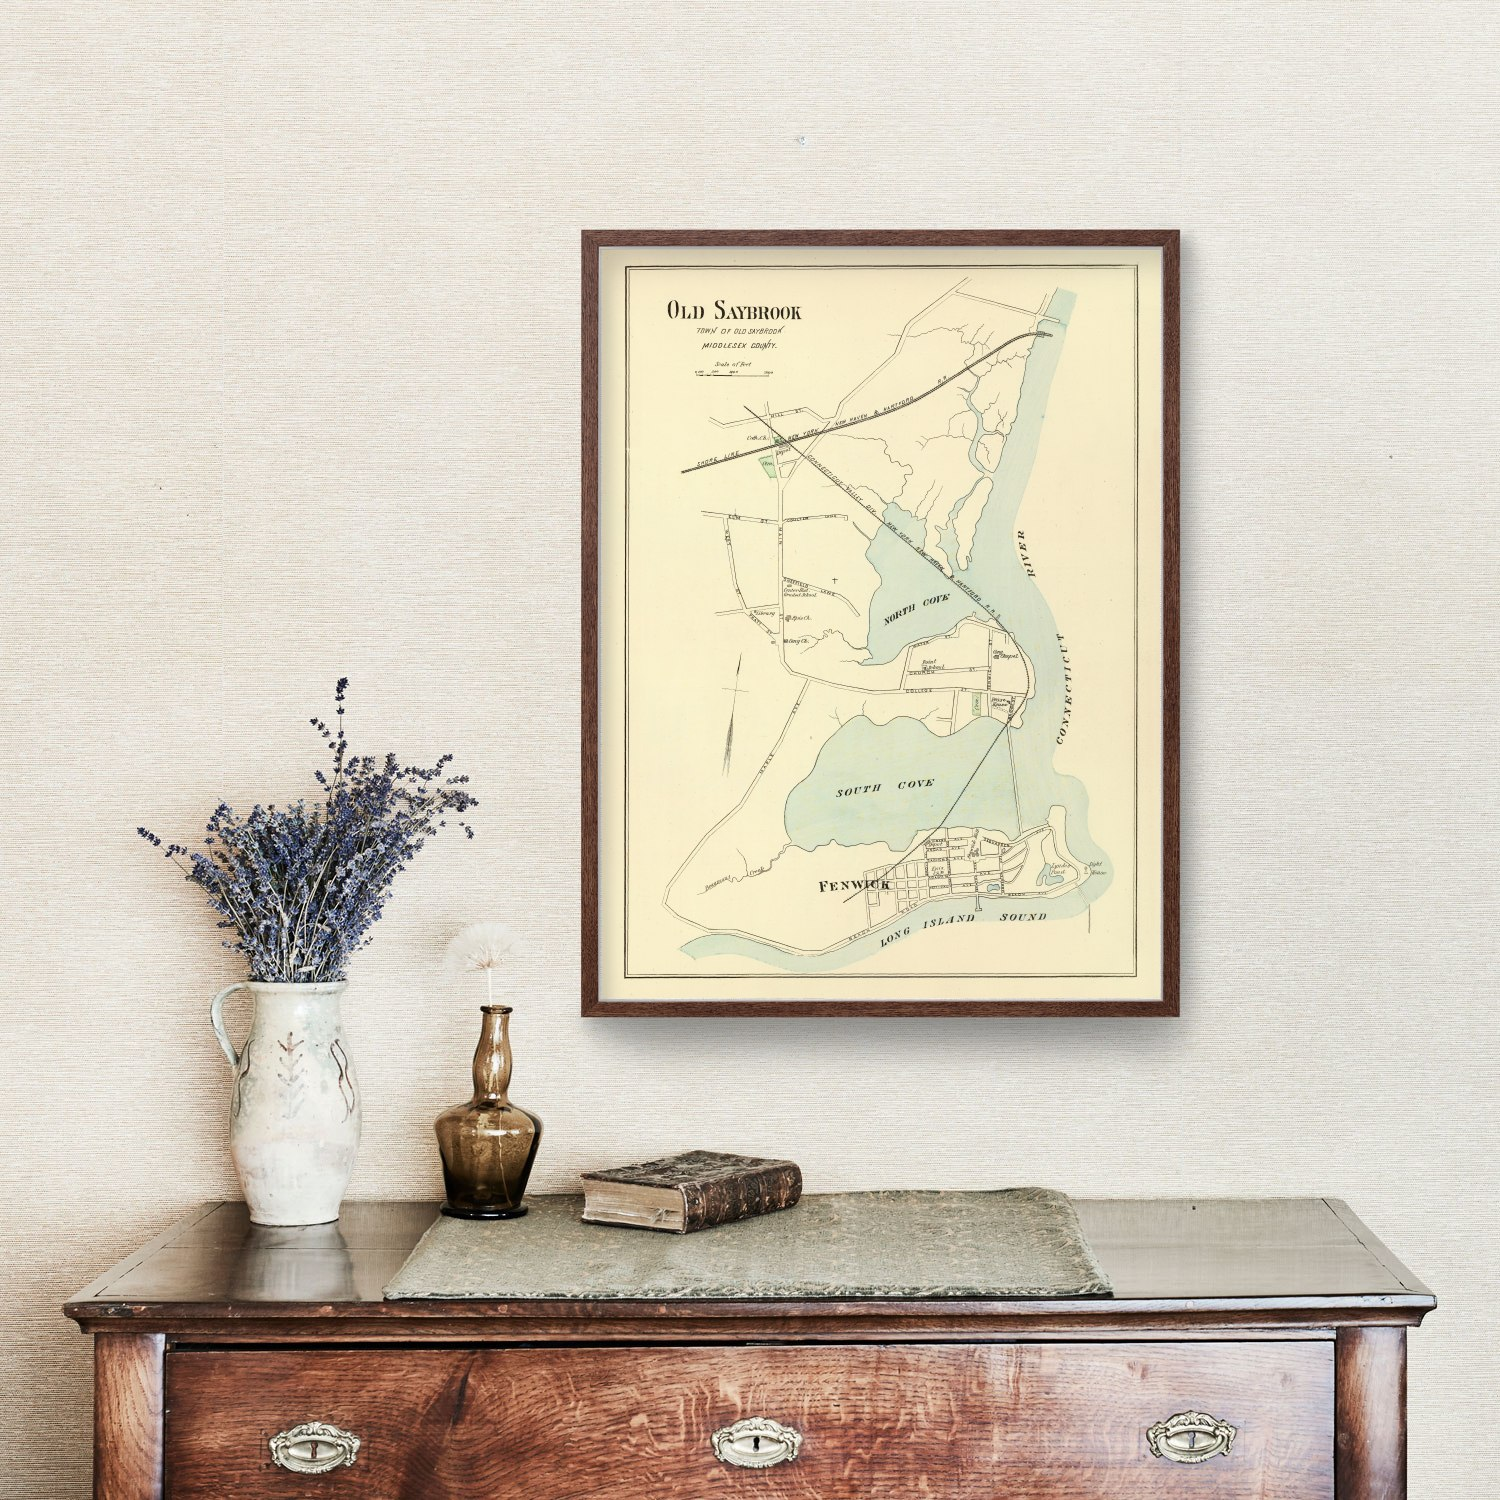 Vintage Map of Old Saybrook, Connecticut 1893